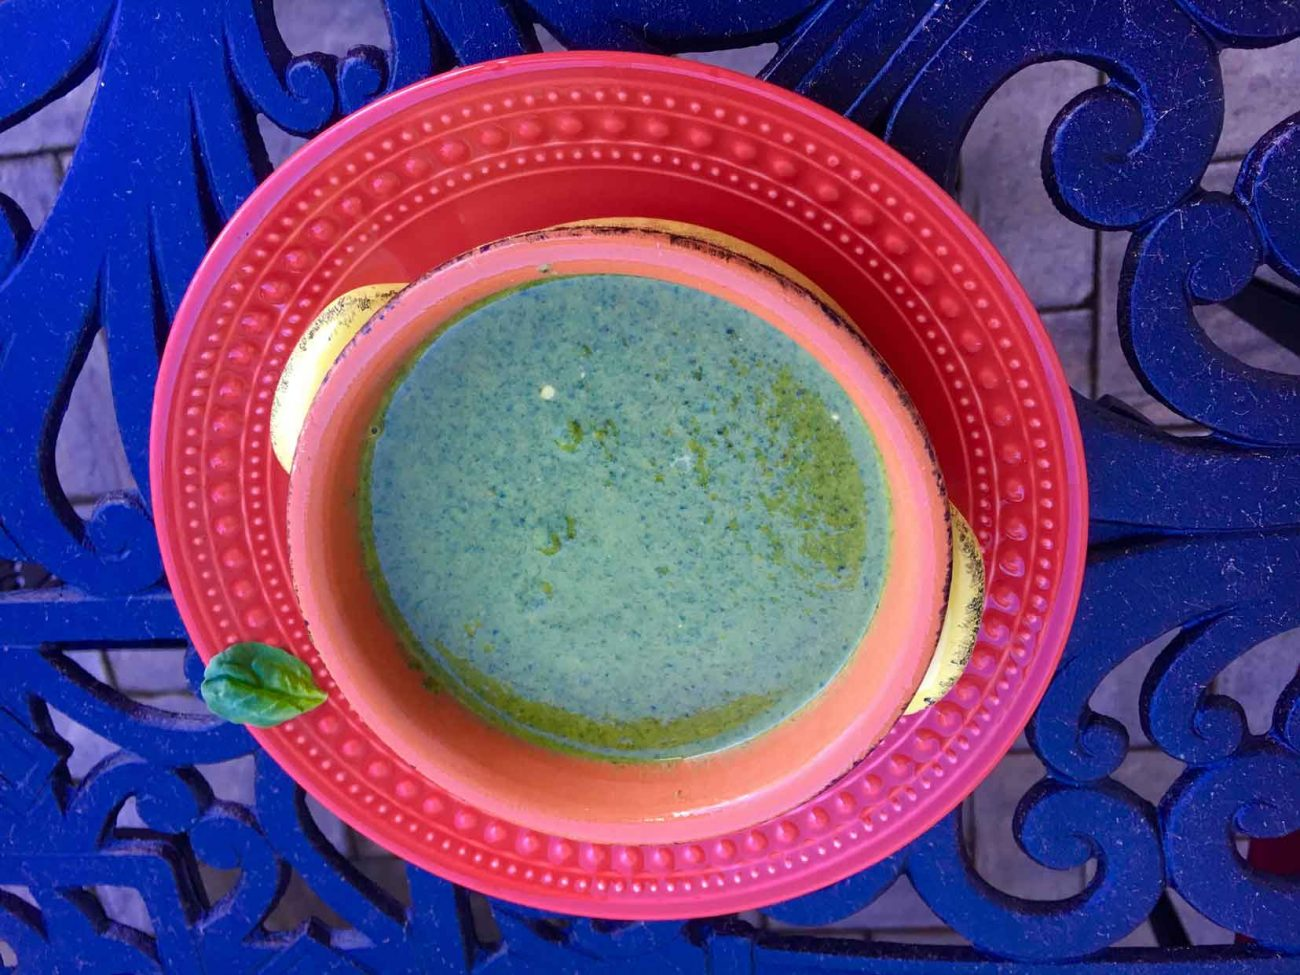 Swiss Chard Bok Choy Spinach Soup with Yogurt